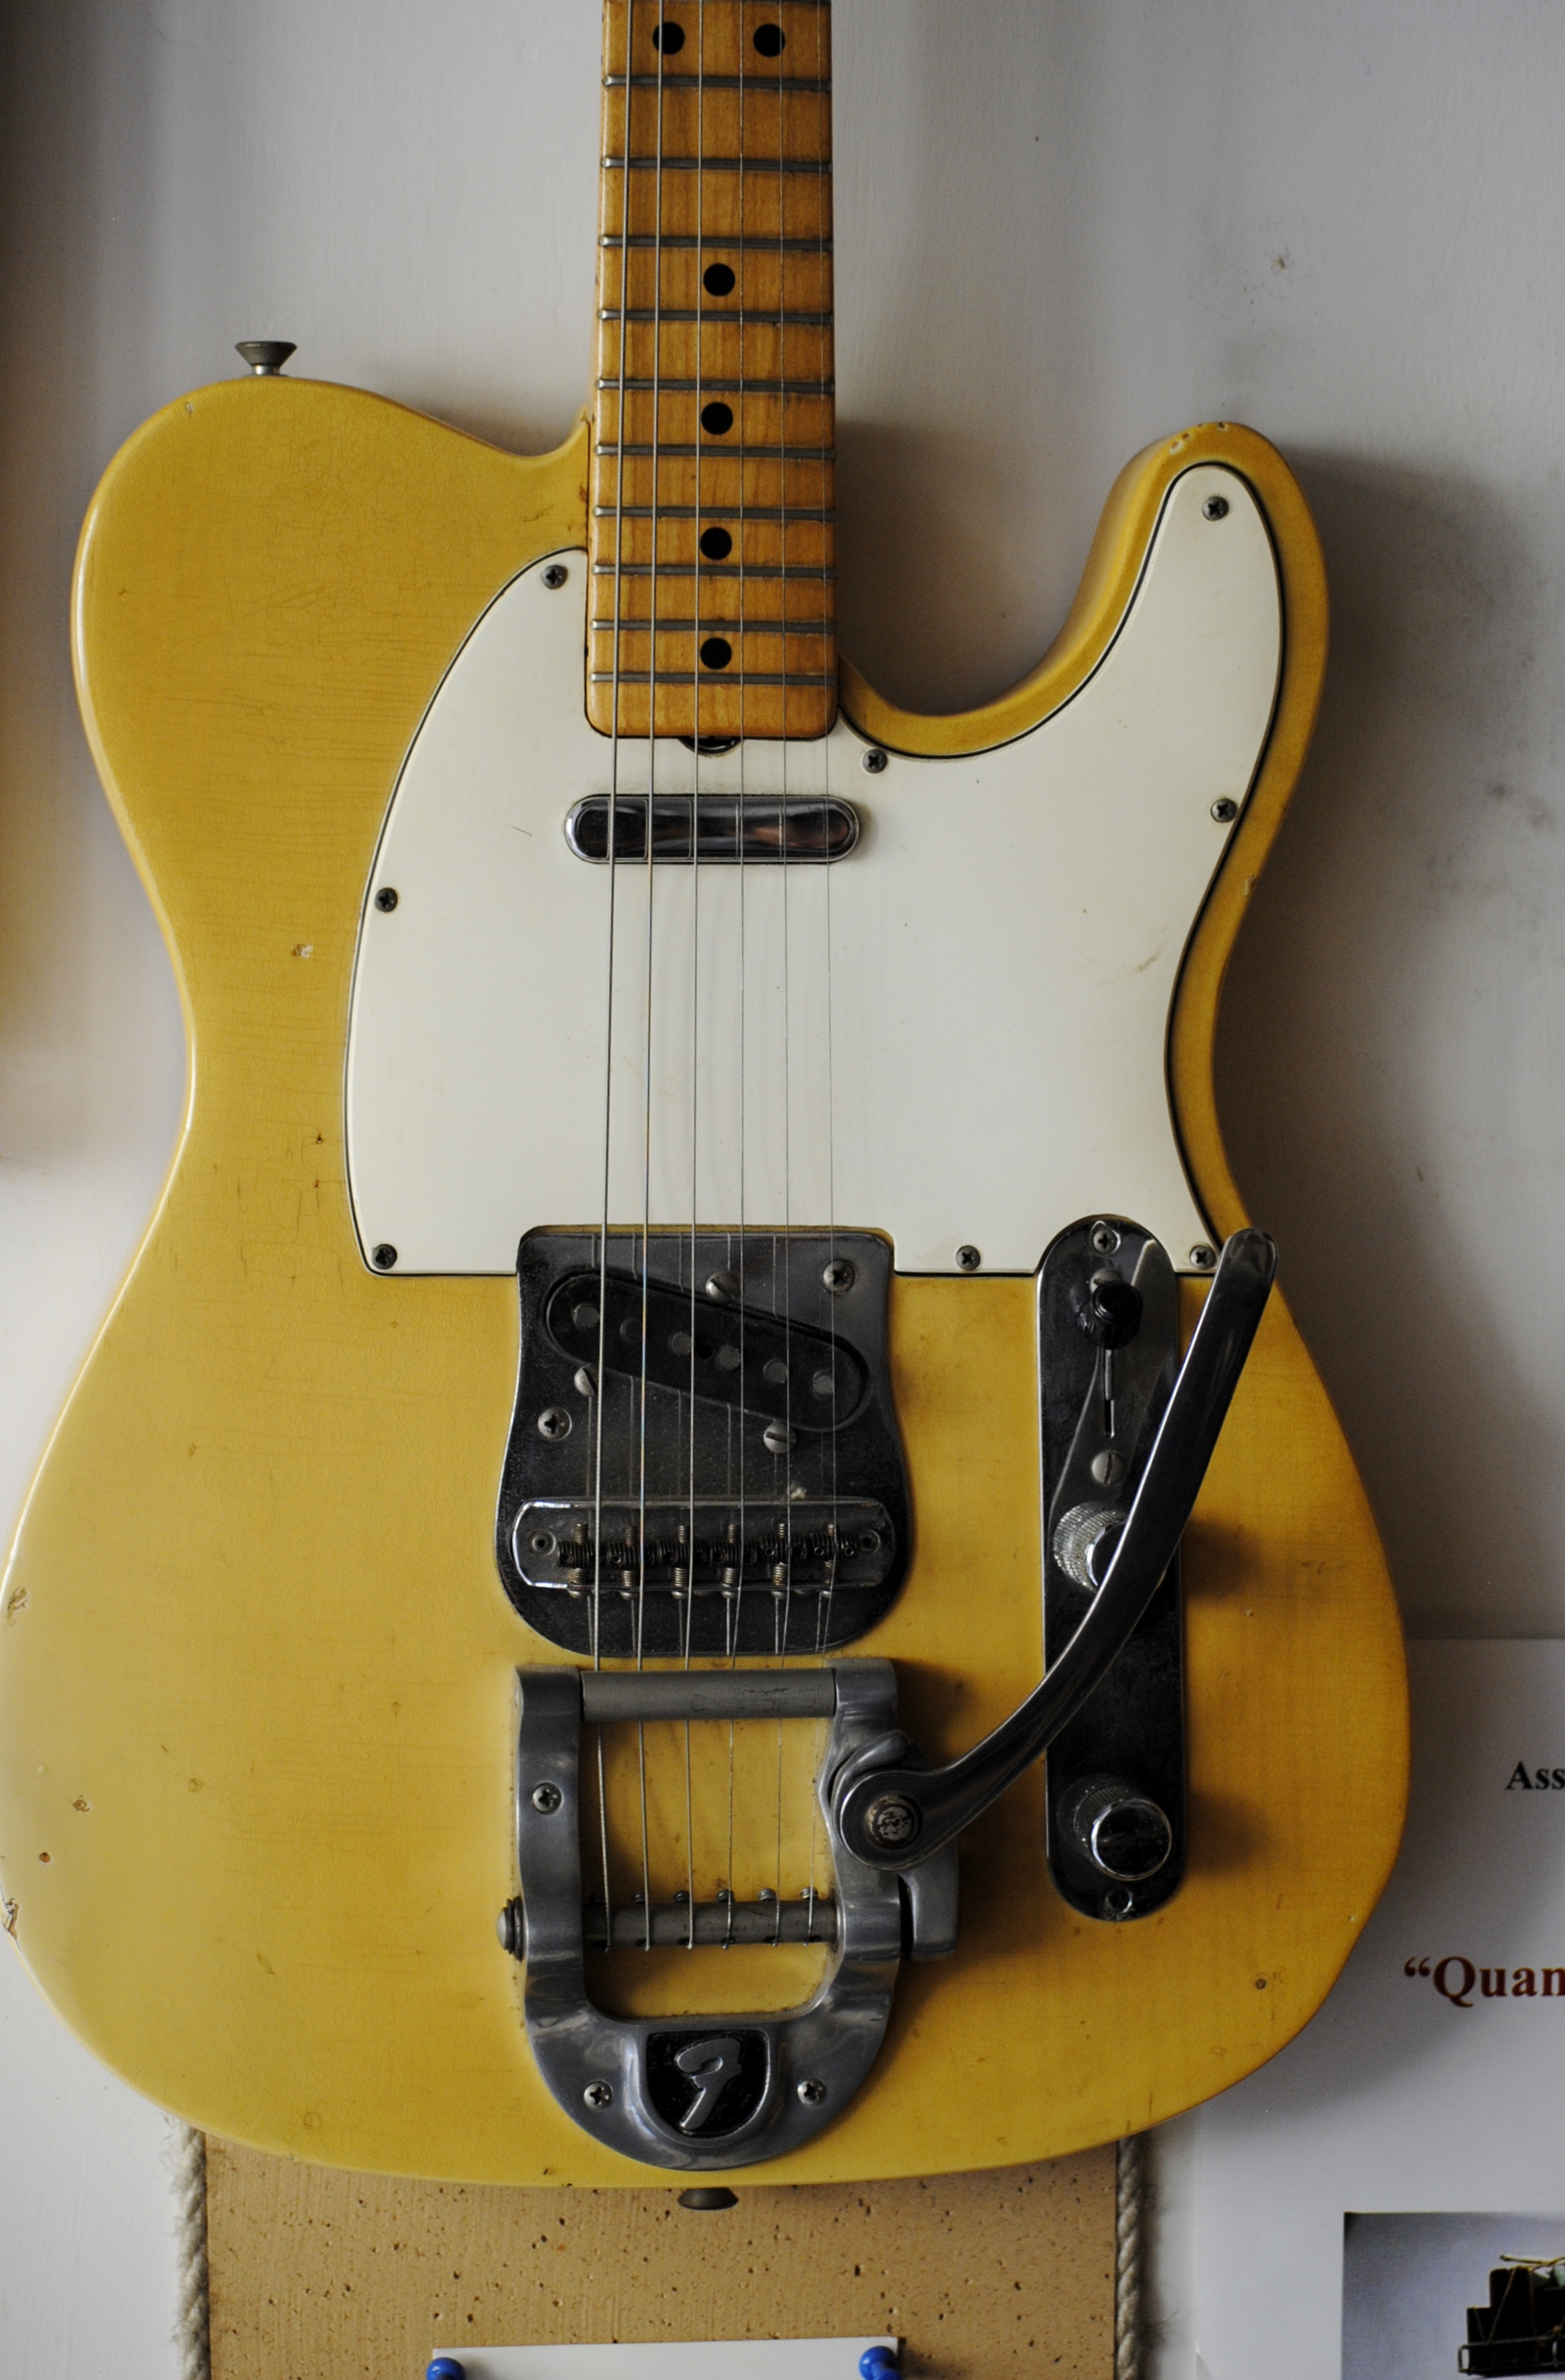 fender telecaster 1969 blonde guitar for sale rome vintage guitars. Black Bedroom Furniture Sets. Home Design Ideas